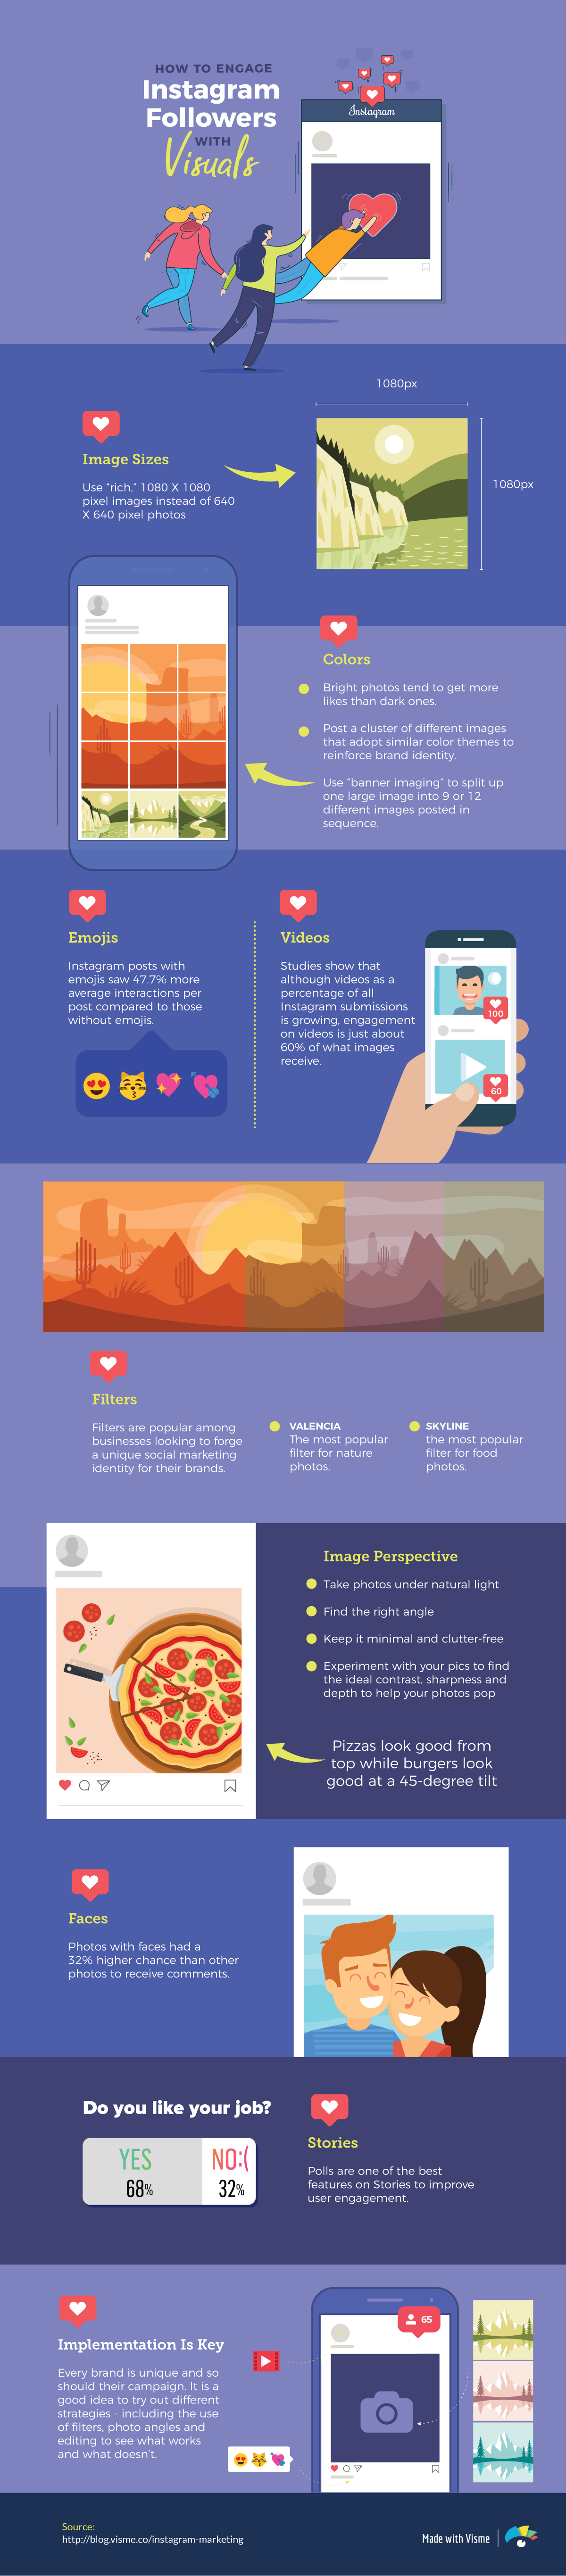 the-instagram-marketing-guide-infographic